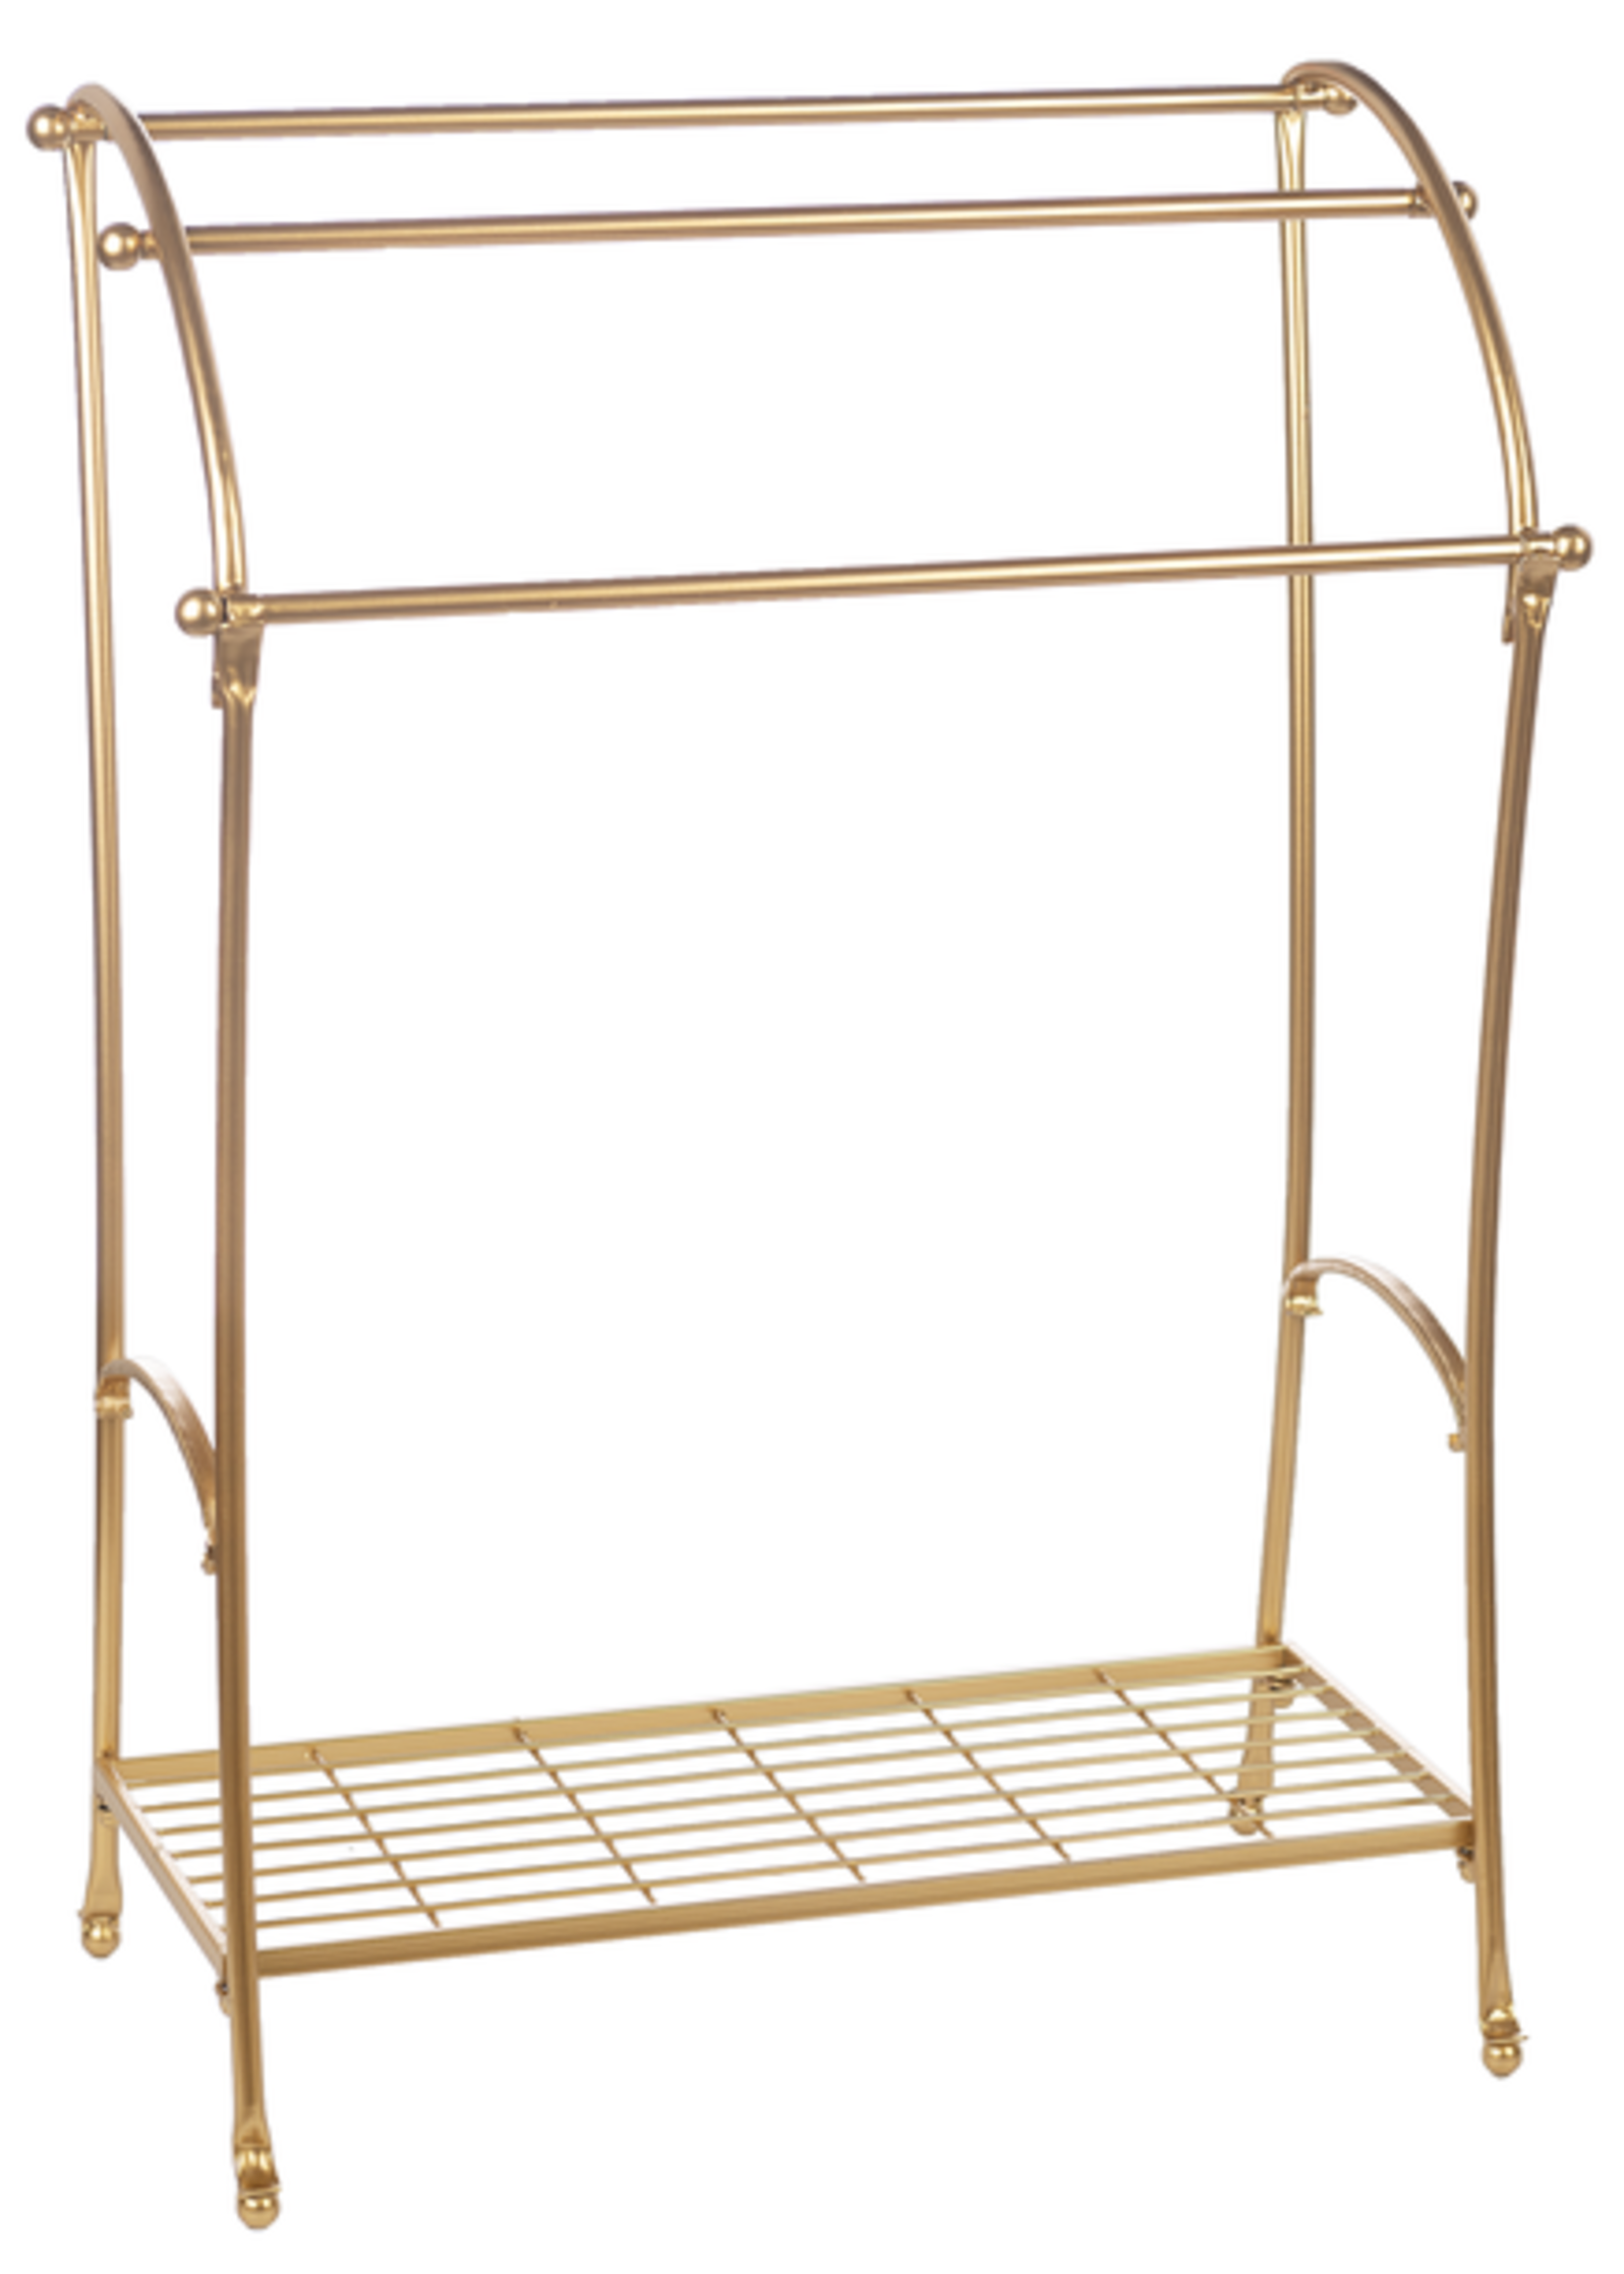 GIFTCRAFT GOLD BLANKET DISPLAYER IRON